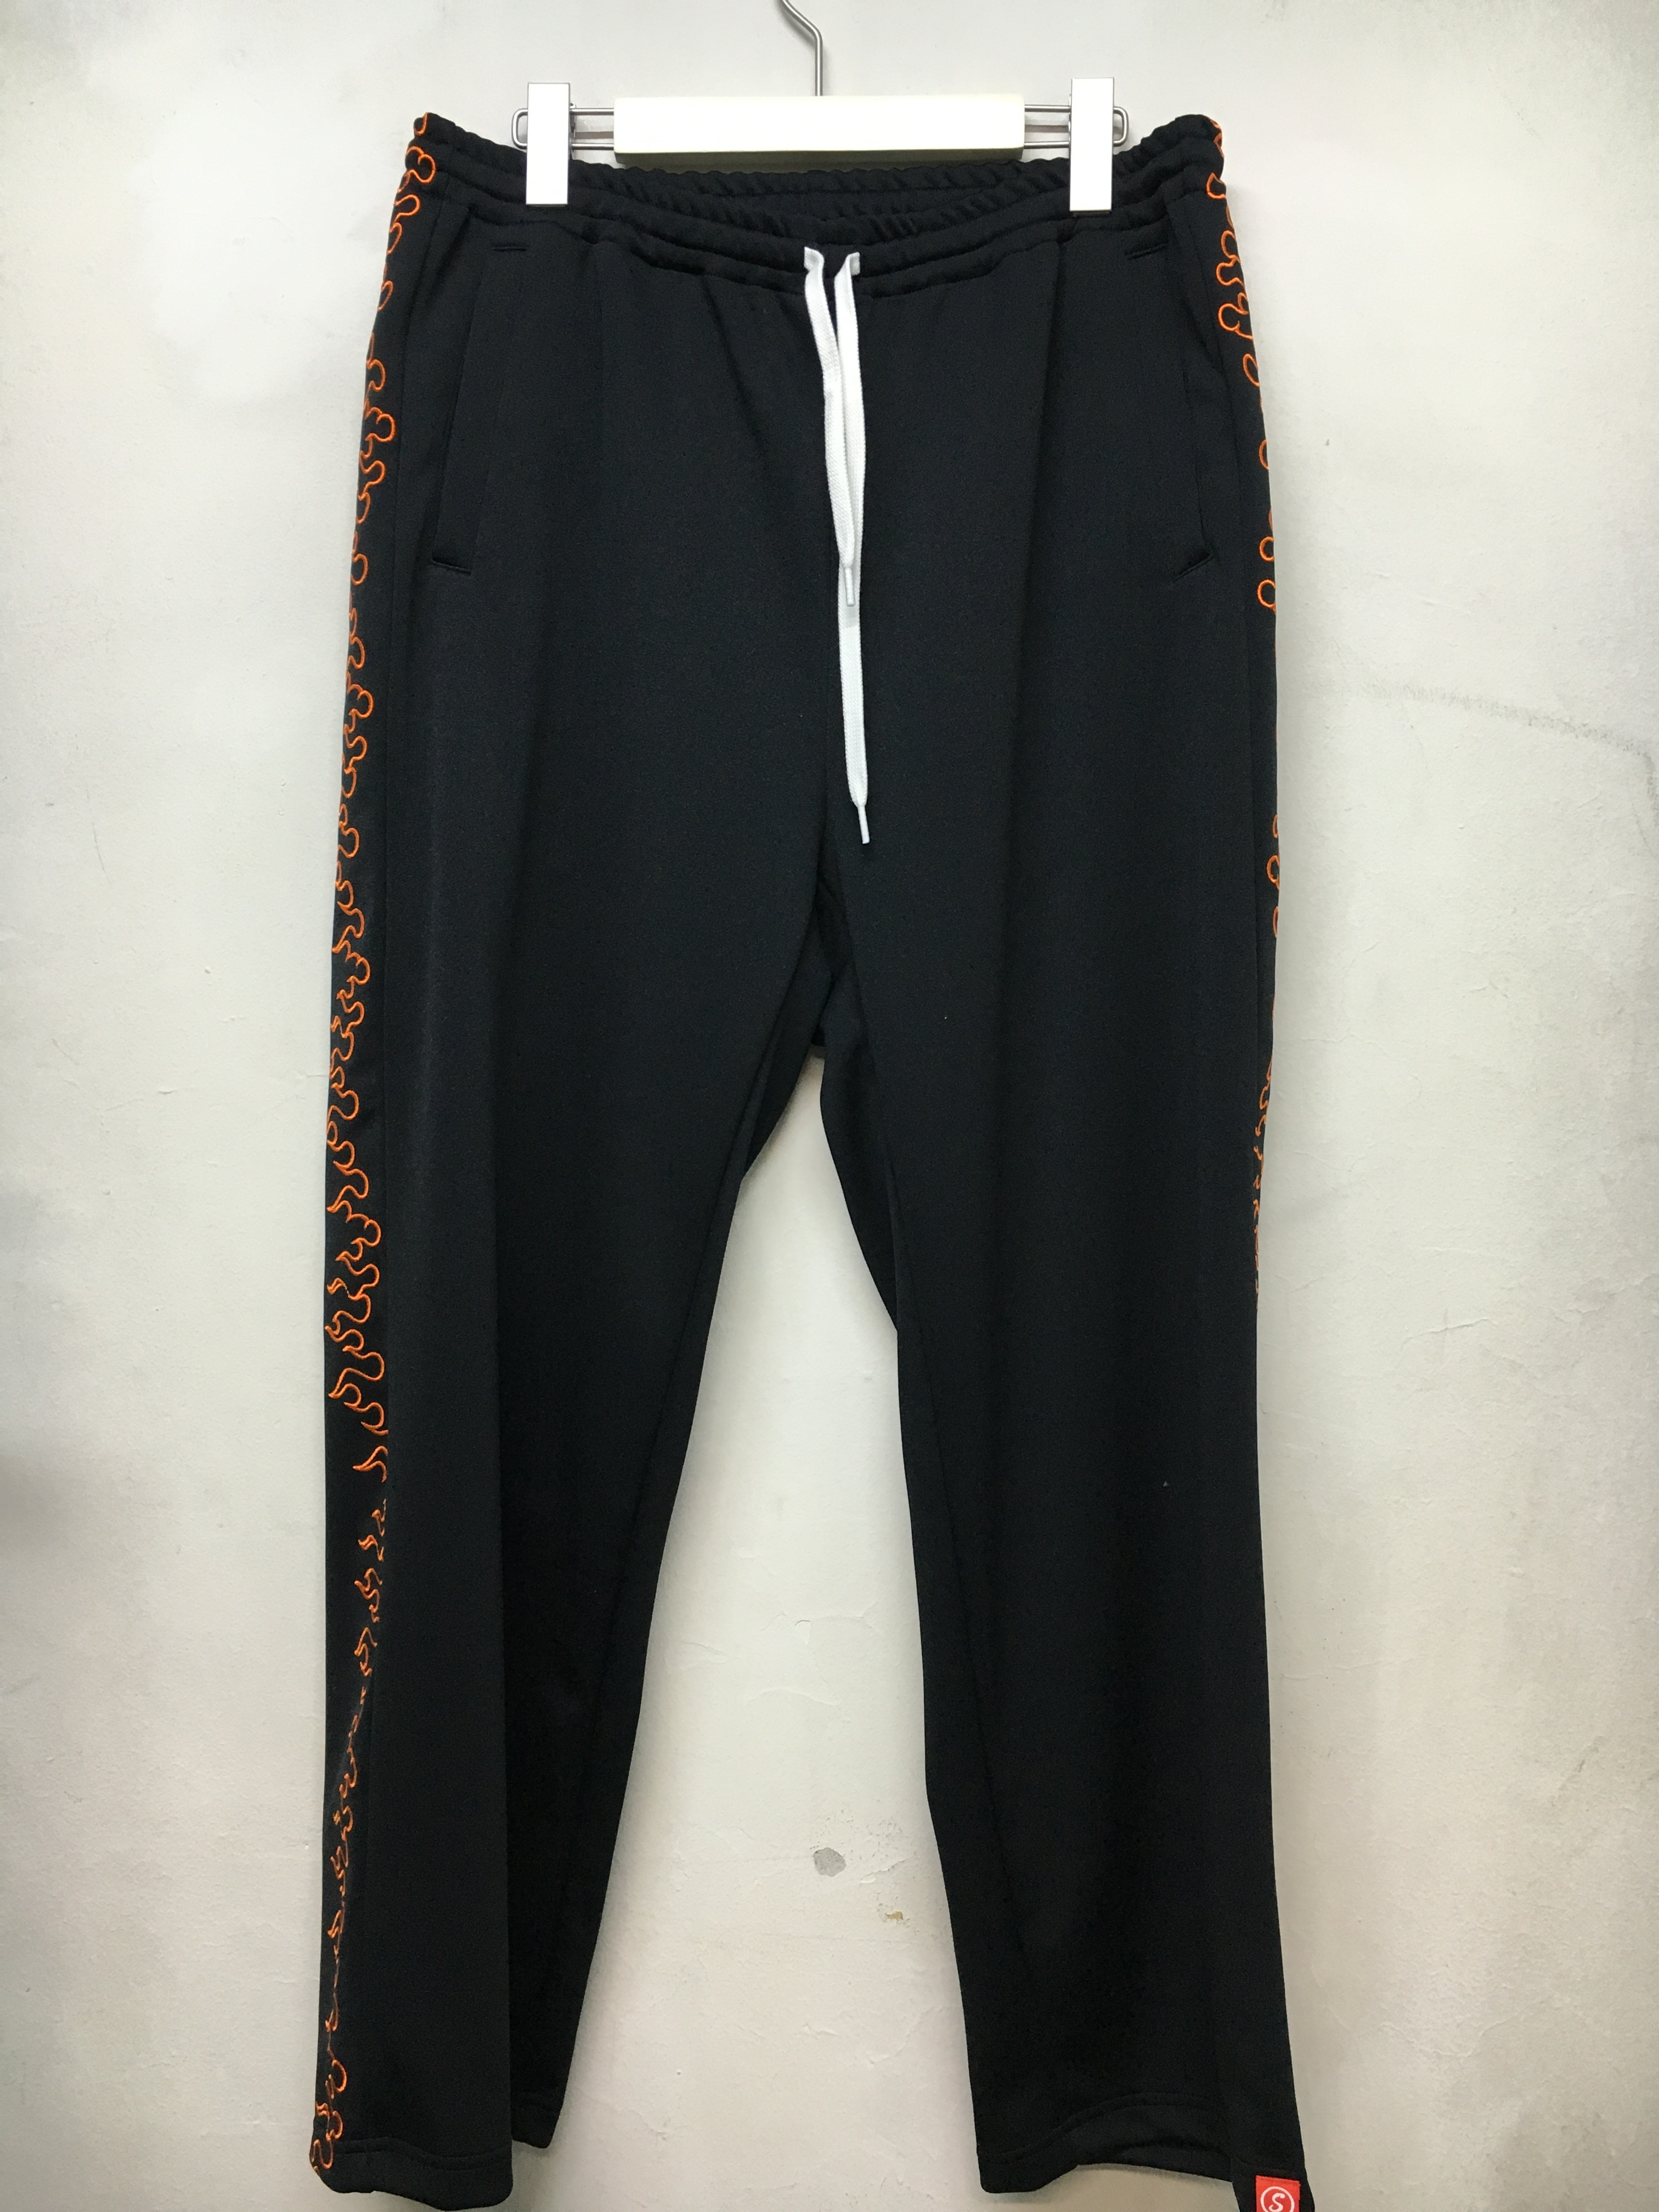 SKIN / FIRE TRACK PANTS -black - 画像1